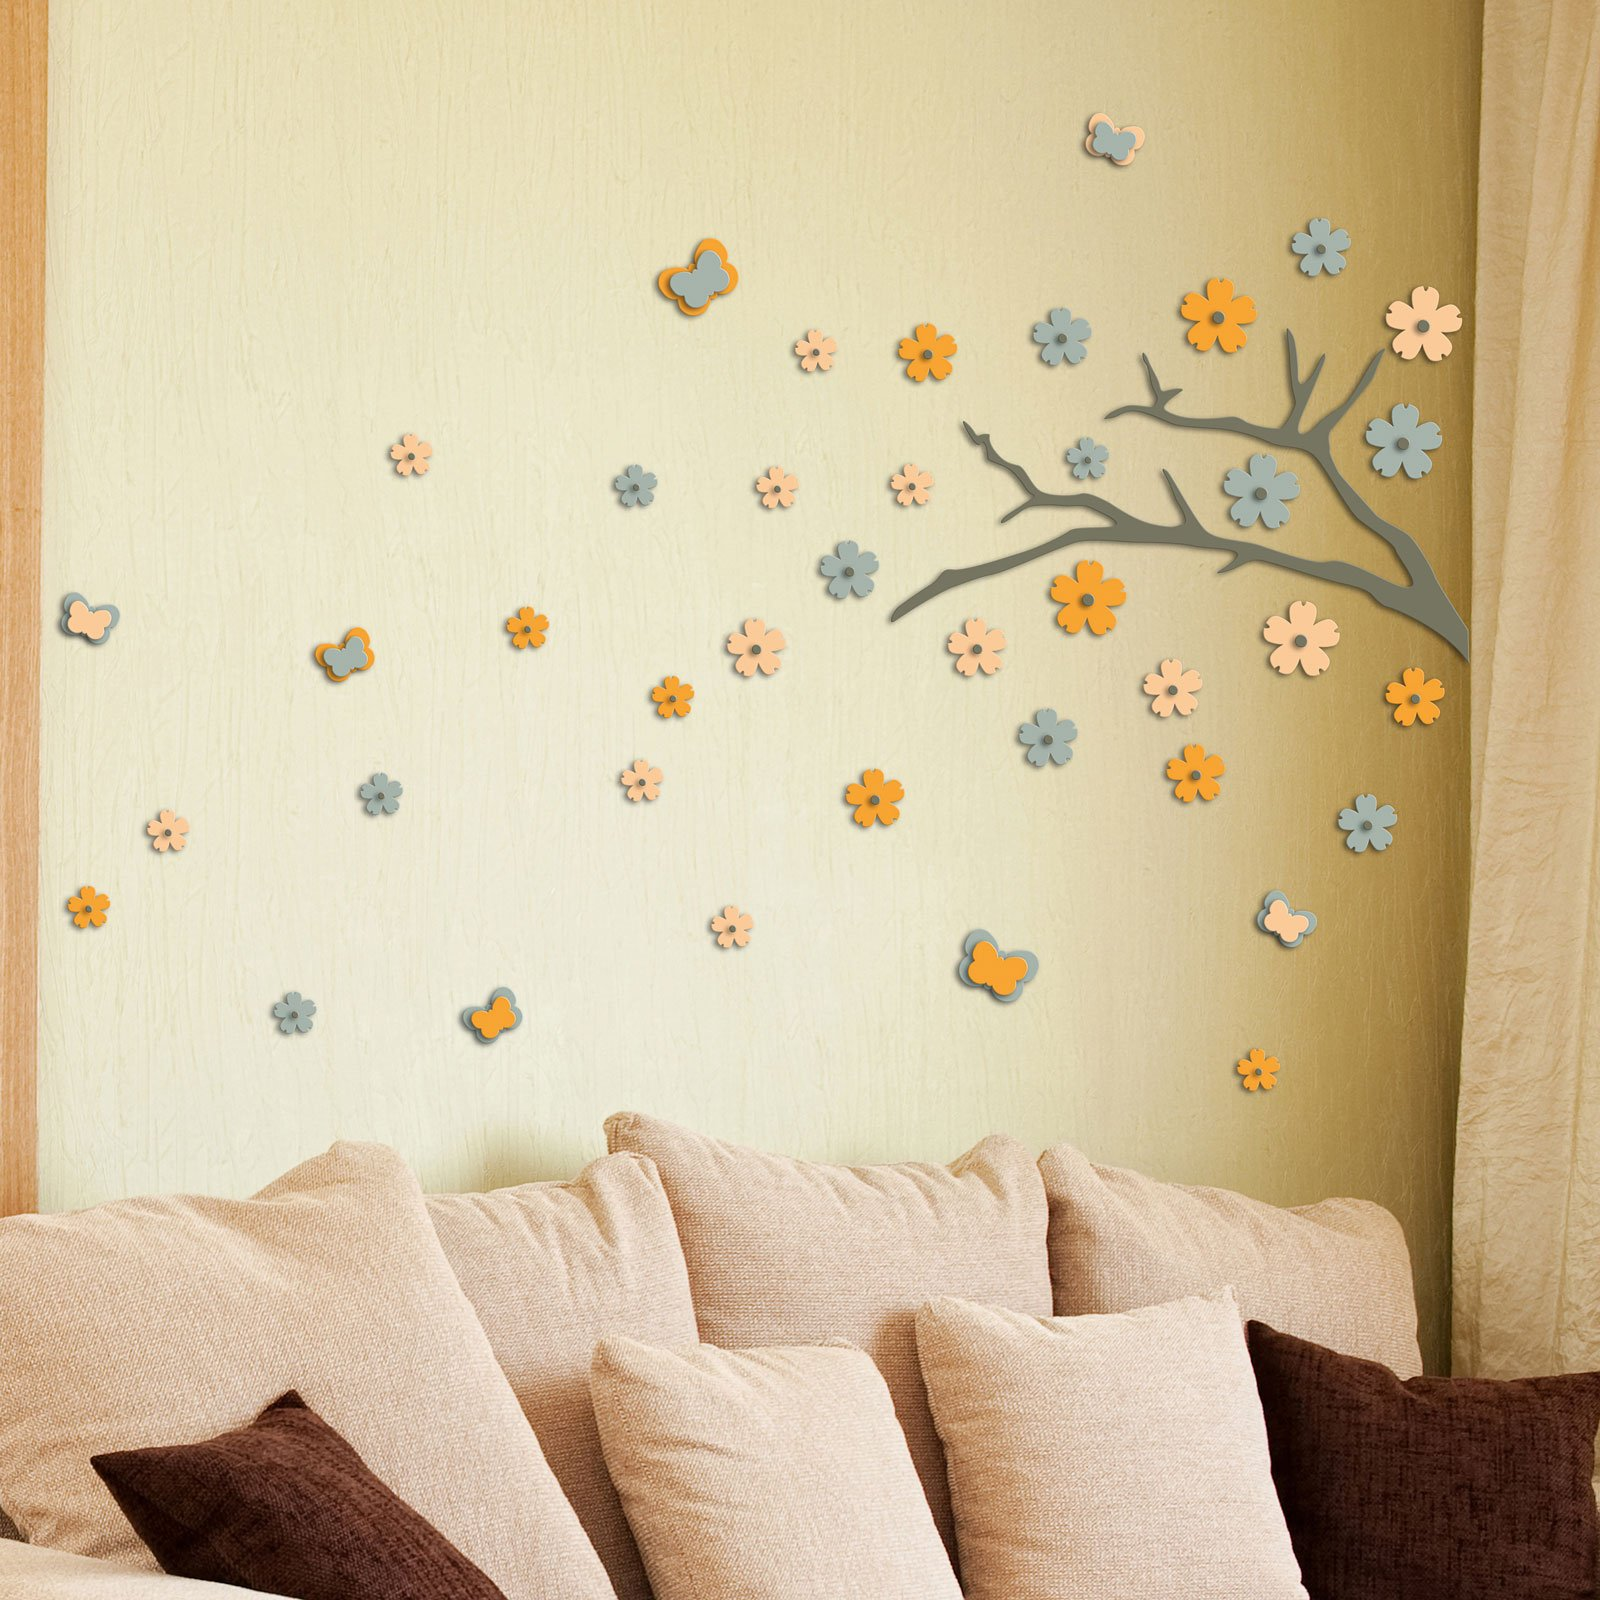 Decorare la parete con profili fregi stickers cose di casa for Decorare le pareti